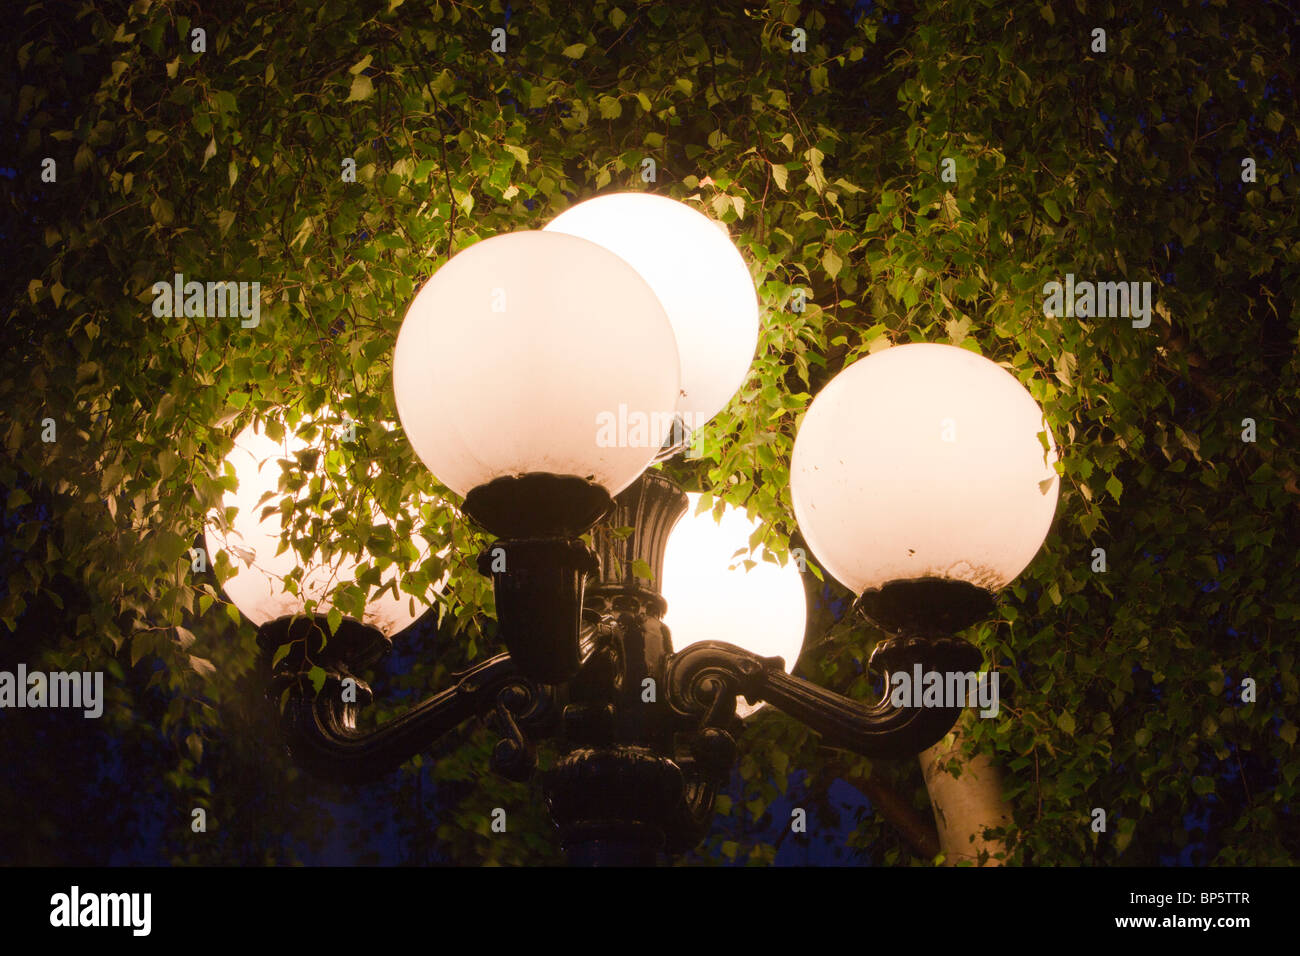 An outside lamp. - Stock Image